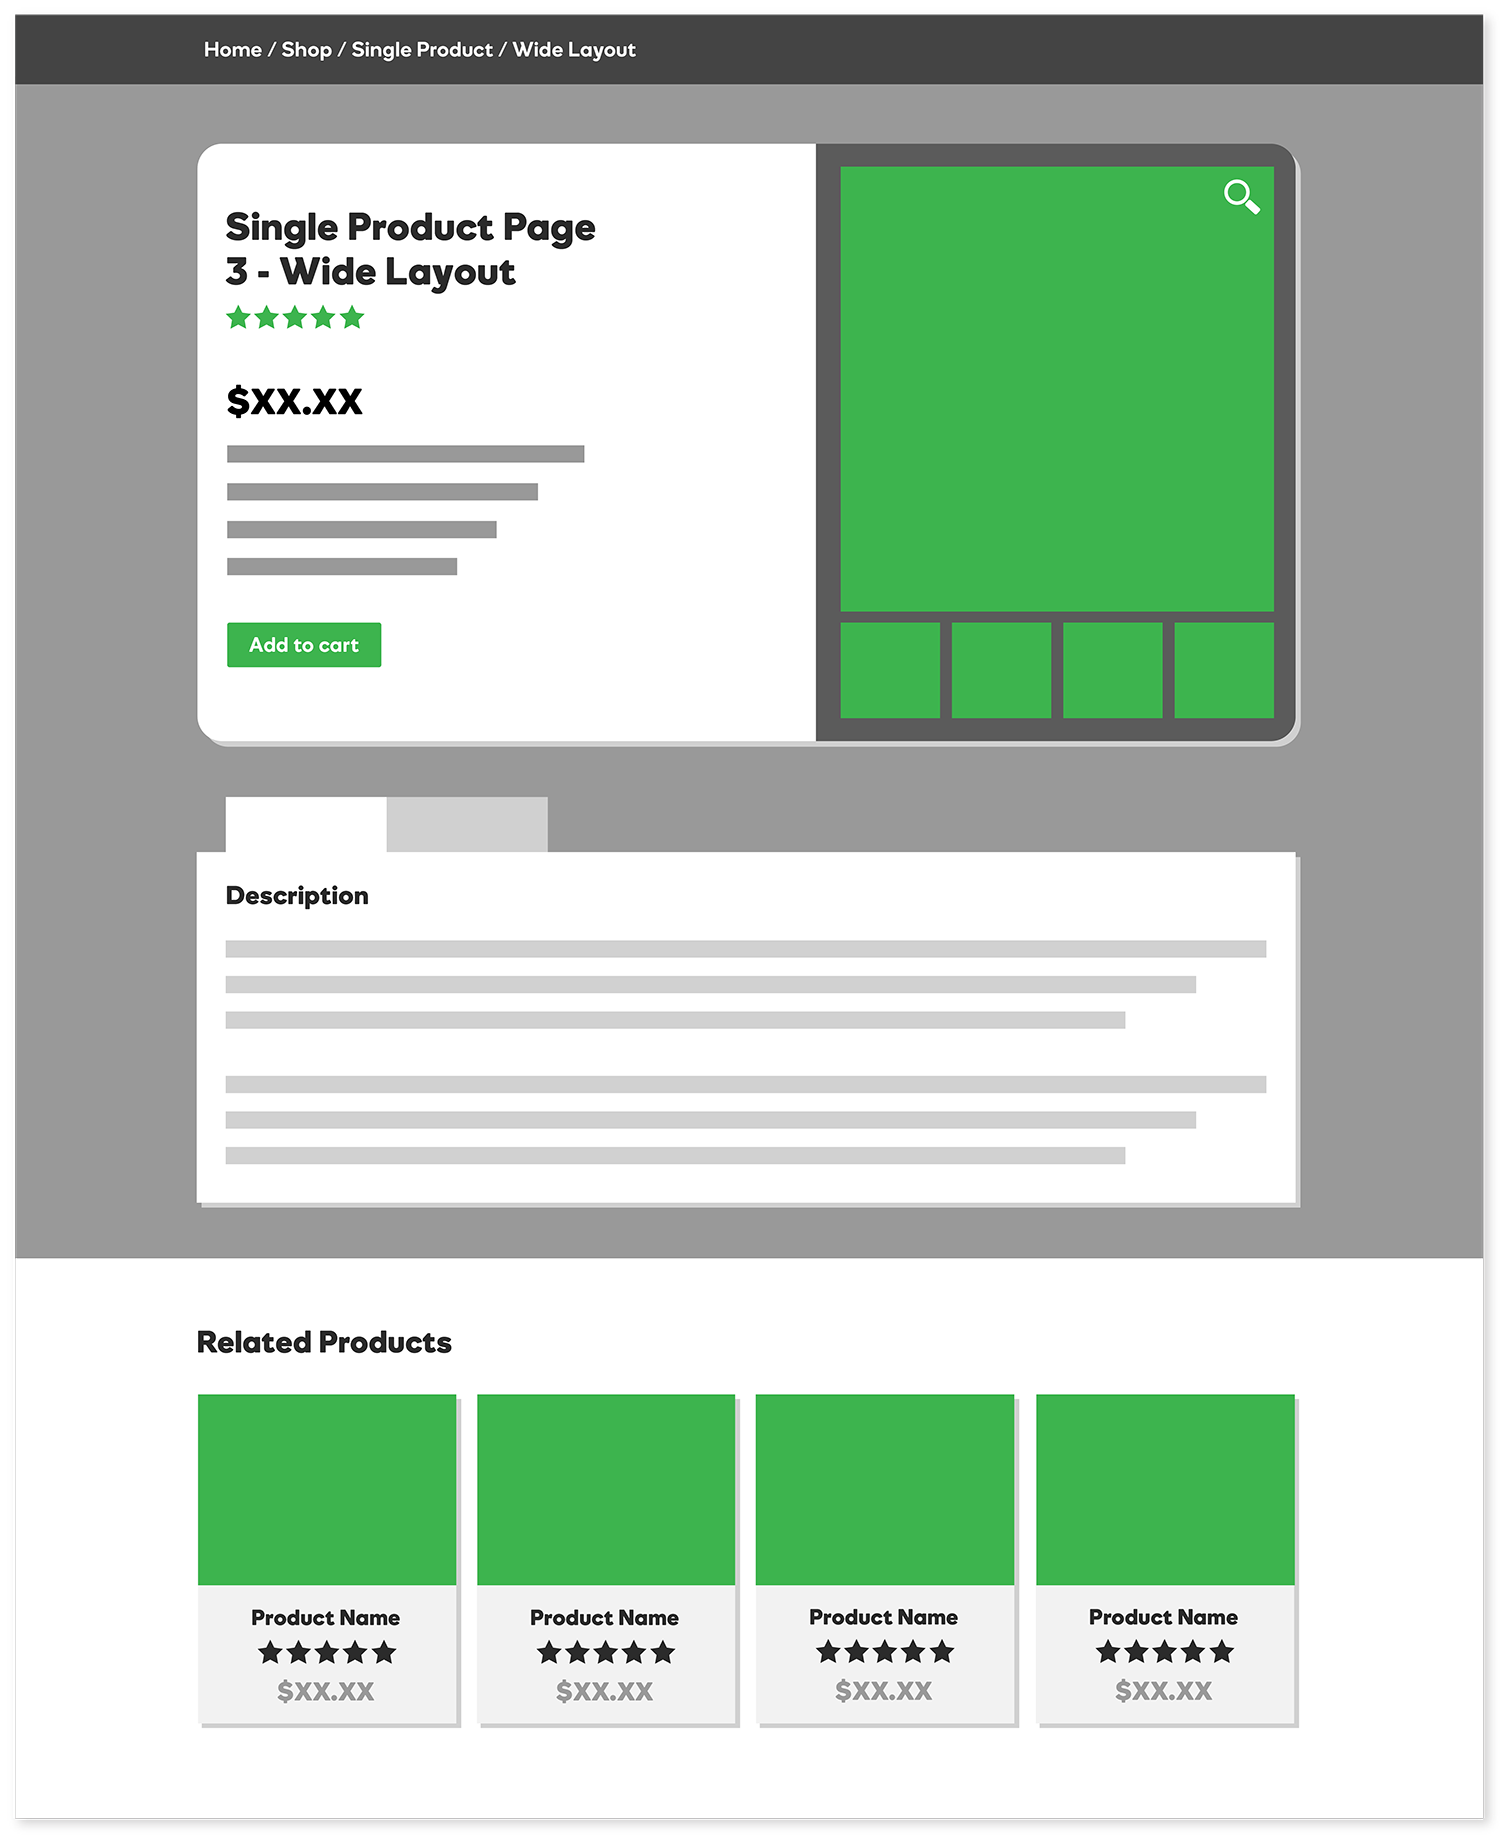 Single Product Page - Wide